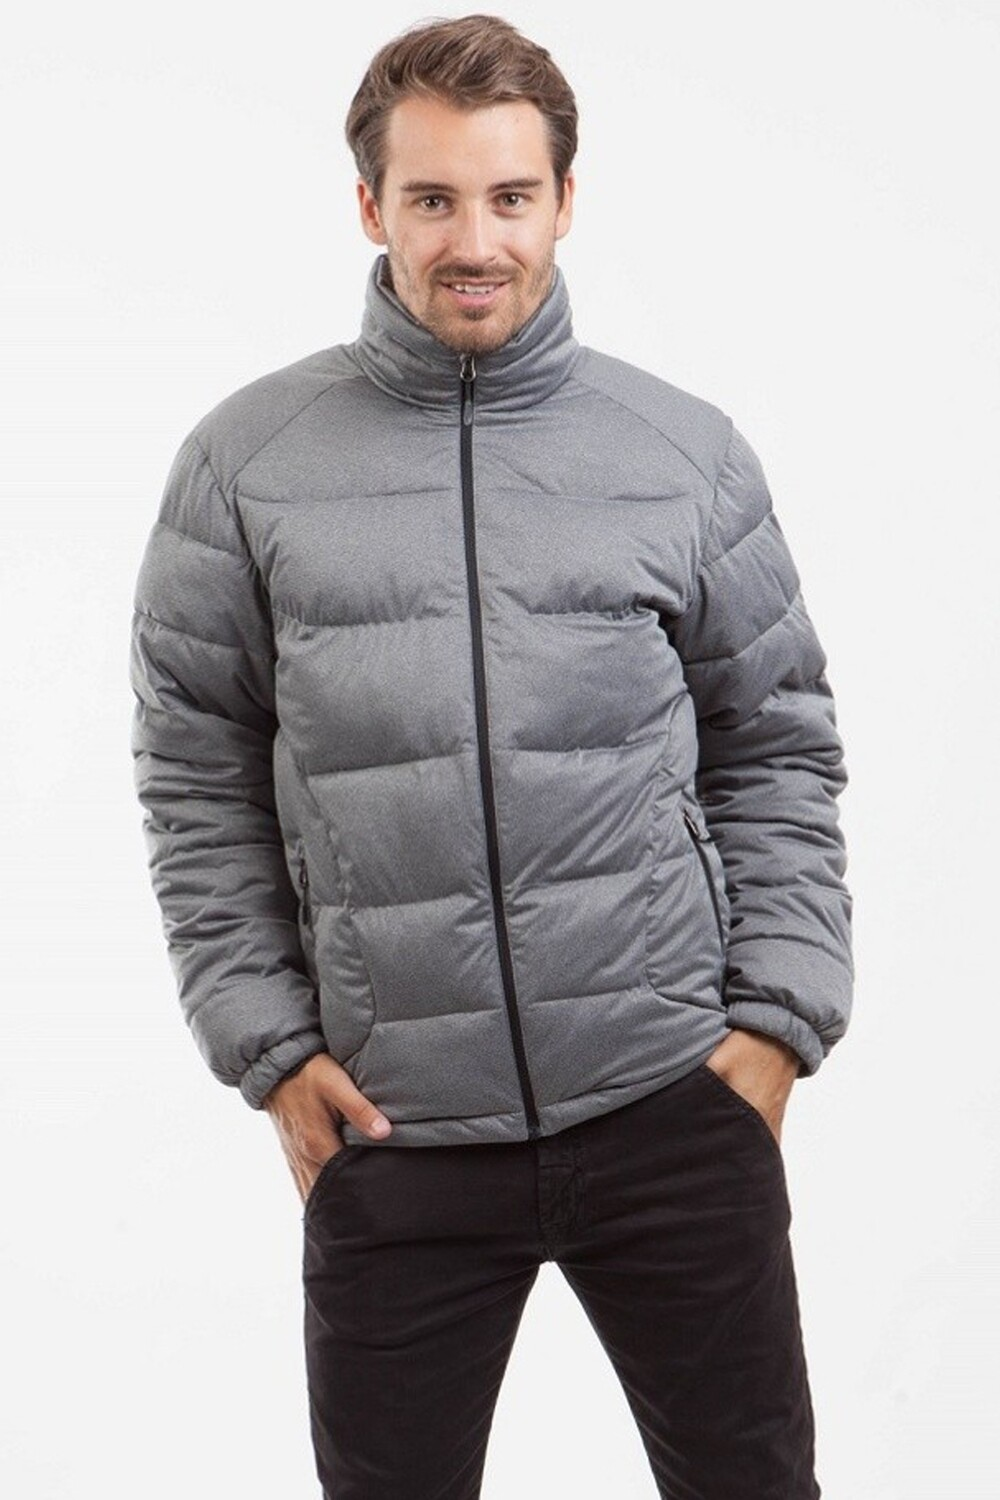 Warm switcher quilted jacket First class